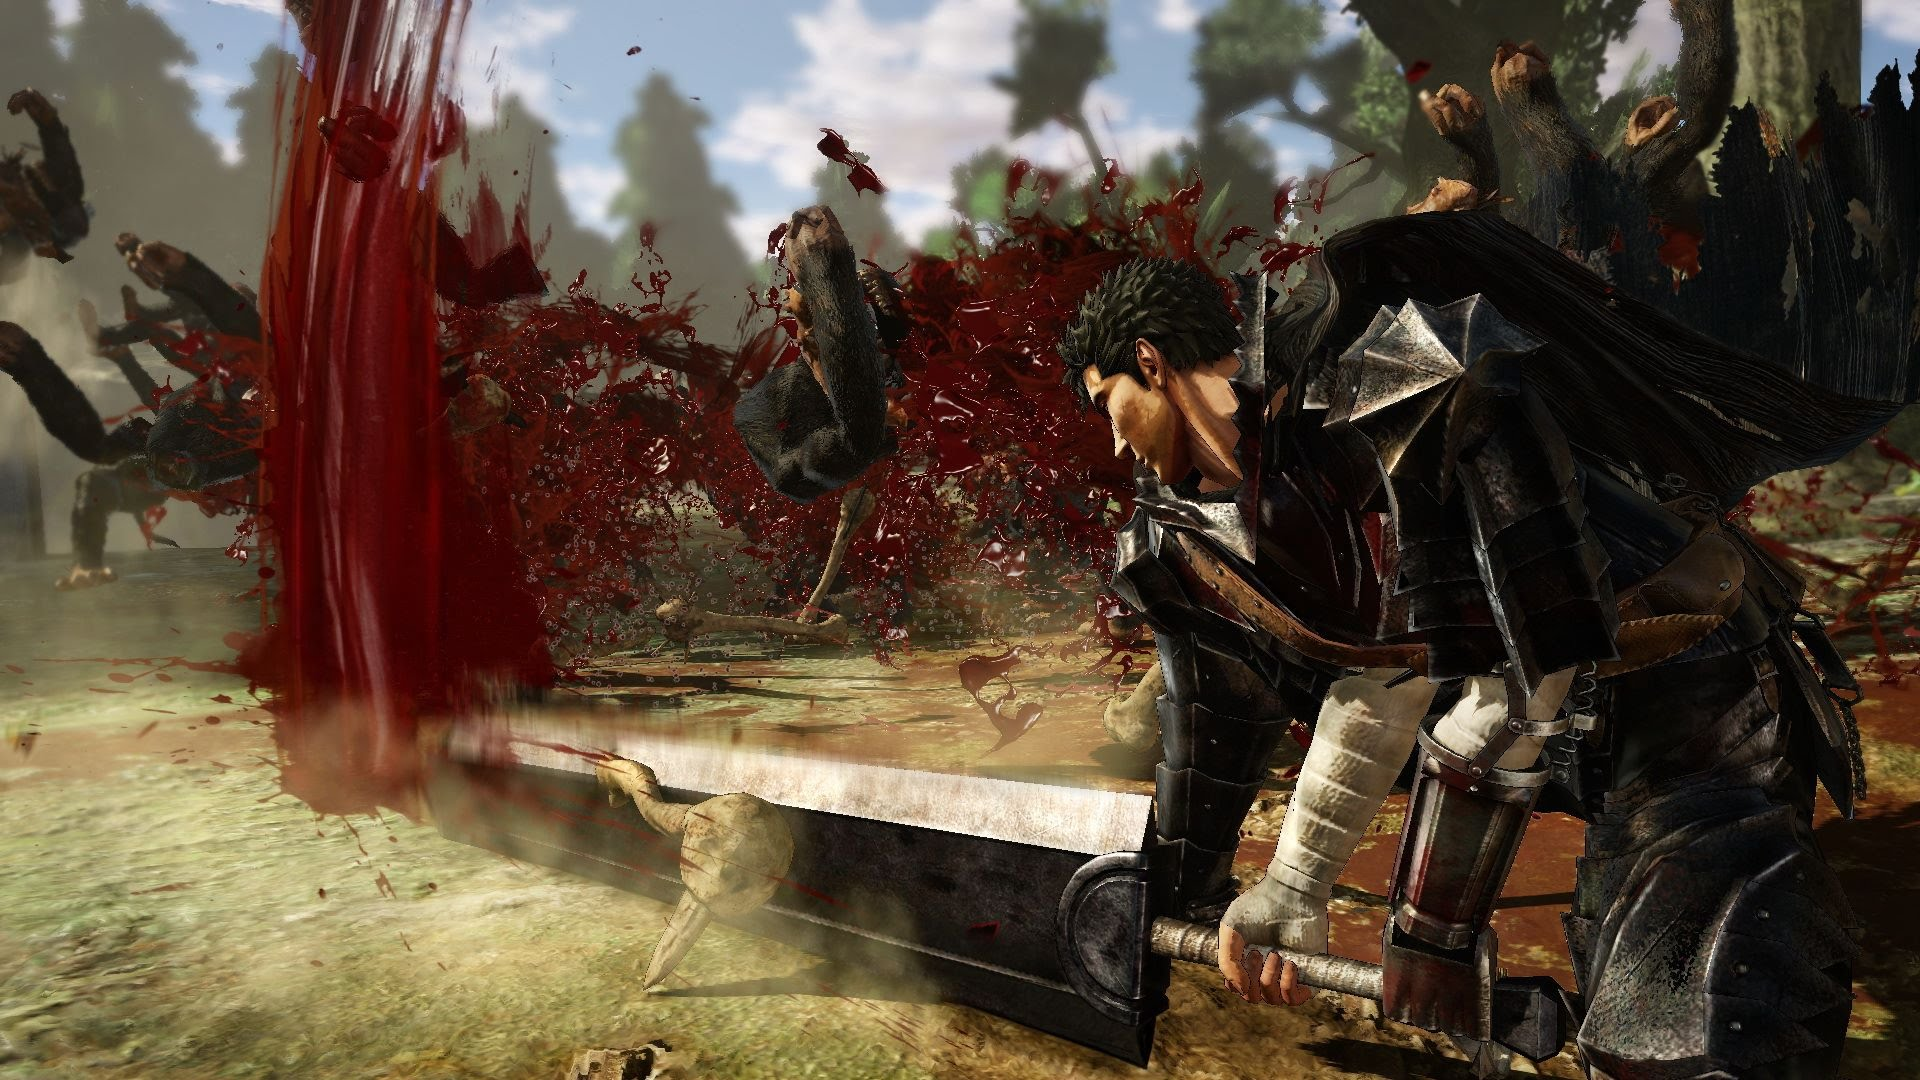 Modojo | Check Out Seven Action-Packed Minutes of Berserk and the Band of the Hawk Gameplay